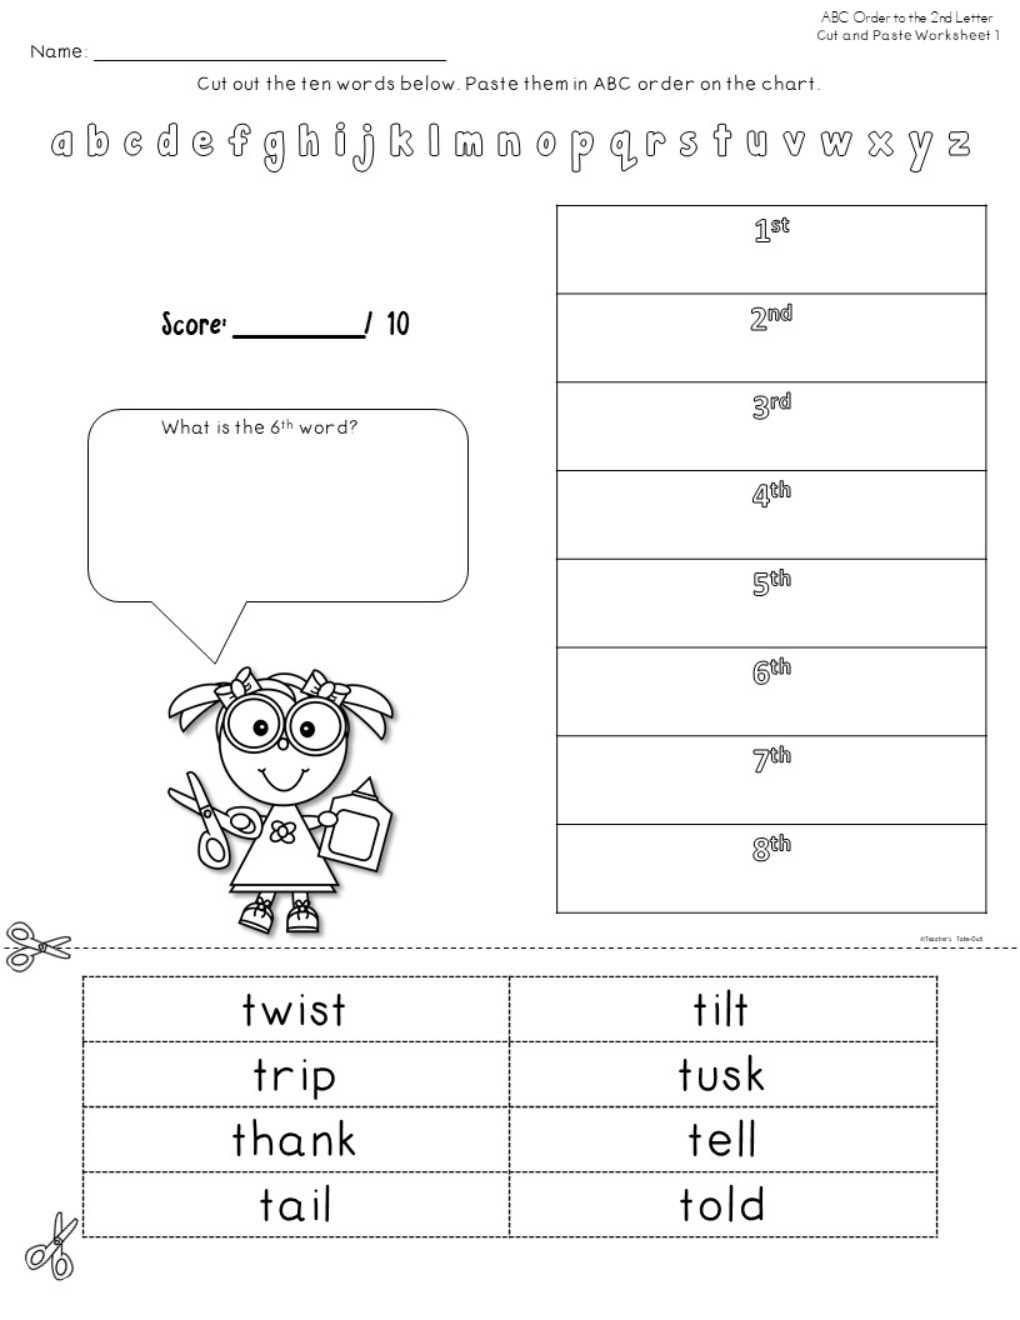 Abc order 2nd Letter Worksheets Abc order to the 2nd Letter